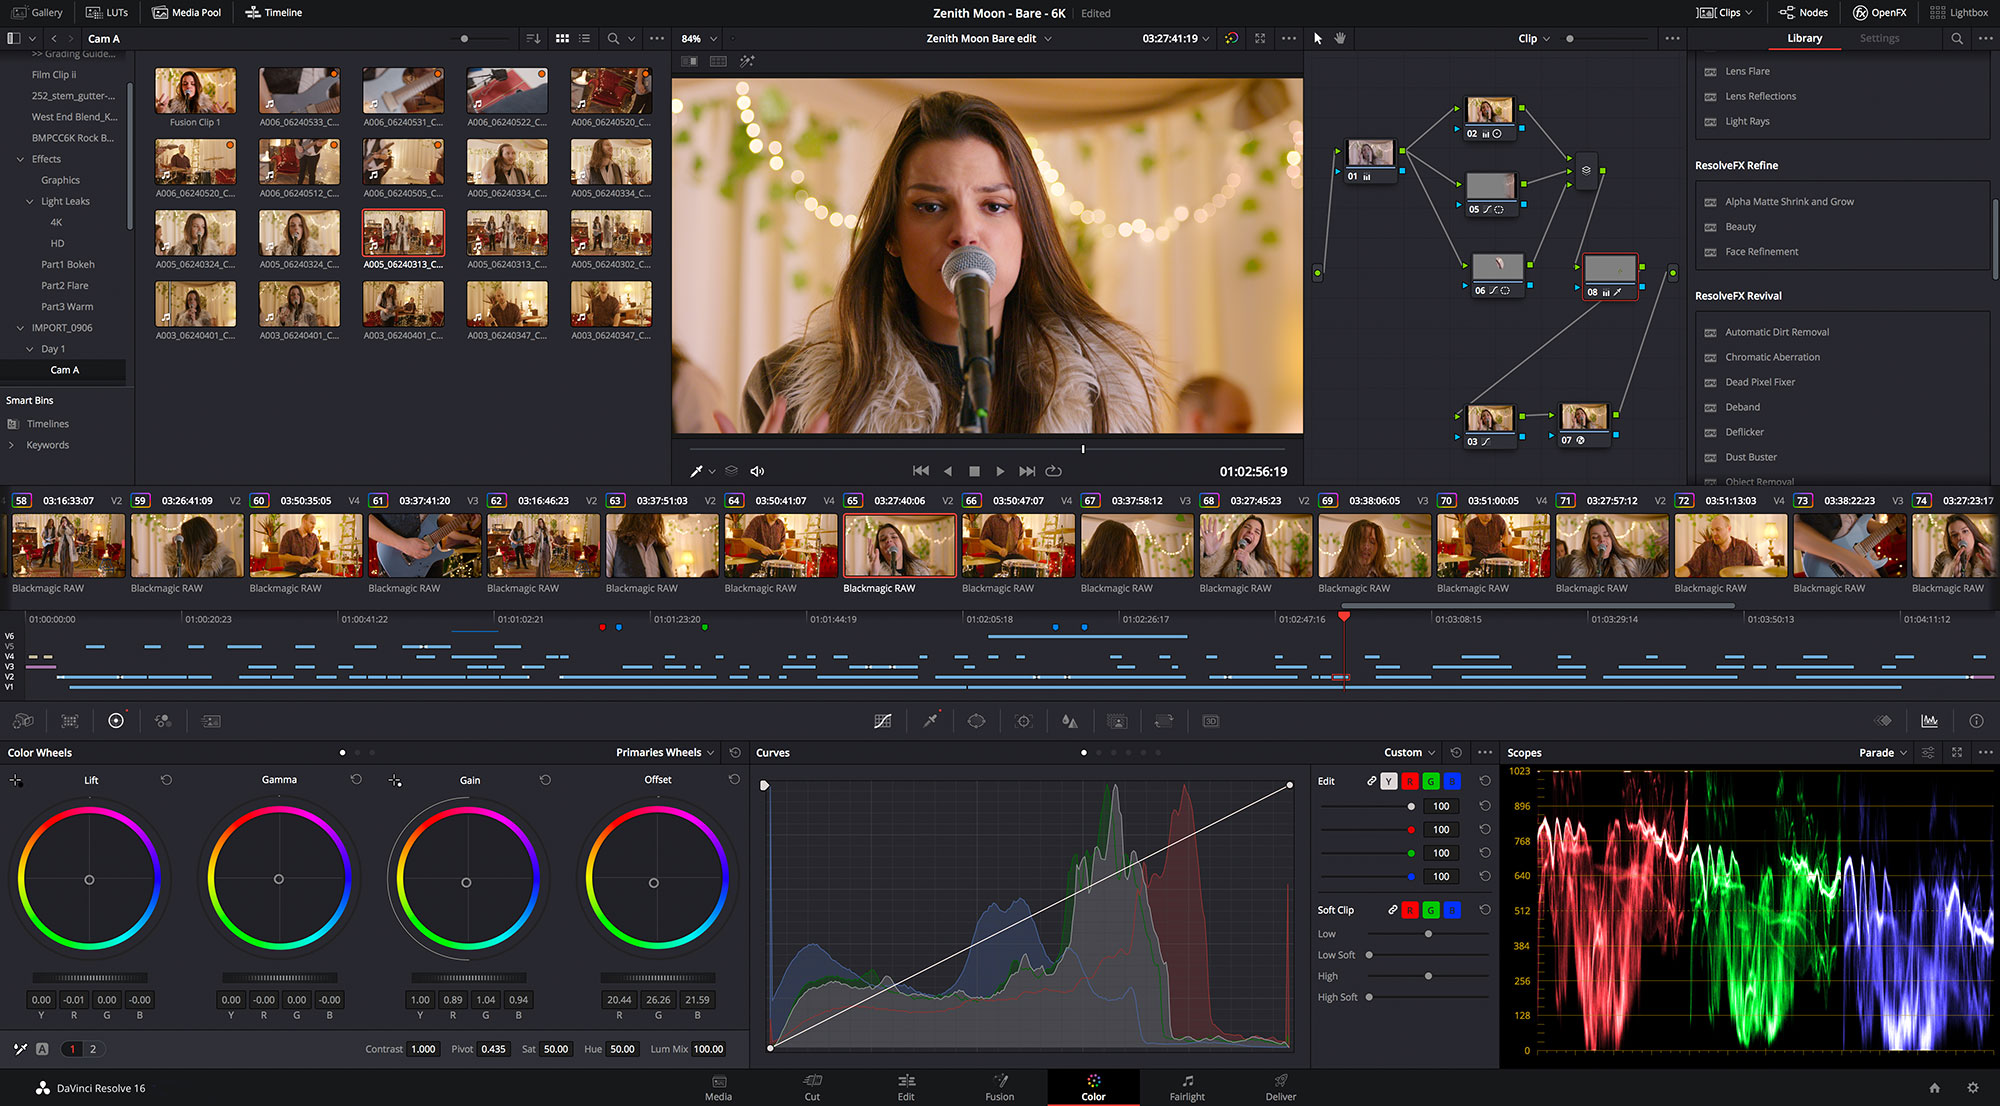 Blackmagic DaVinci Resolve Update 16.3 Beta 2: Now also support for BRAW 12K on Windows